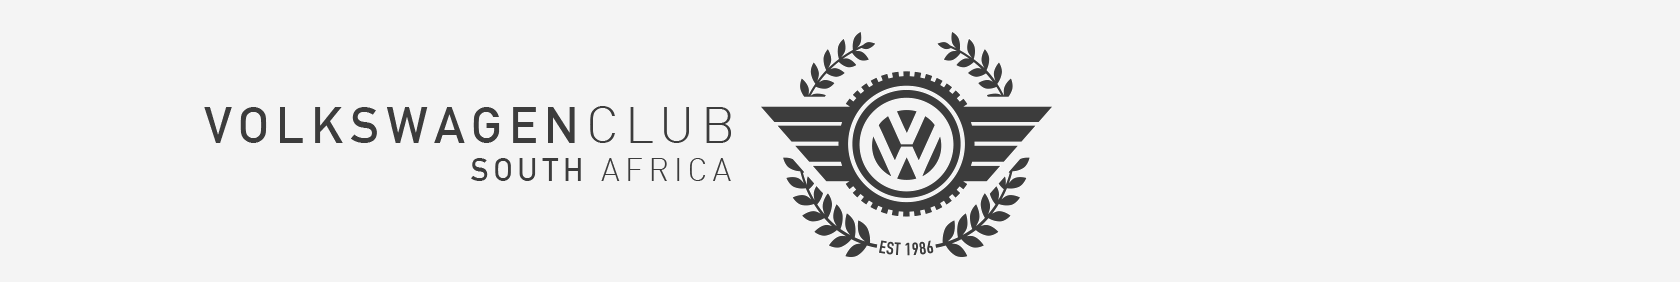 The Volkswagen Club of South Africa